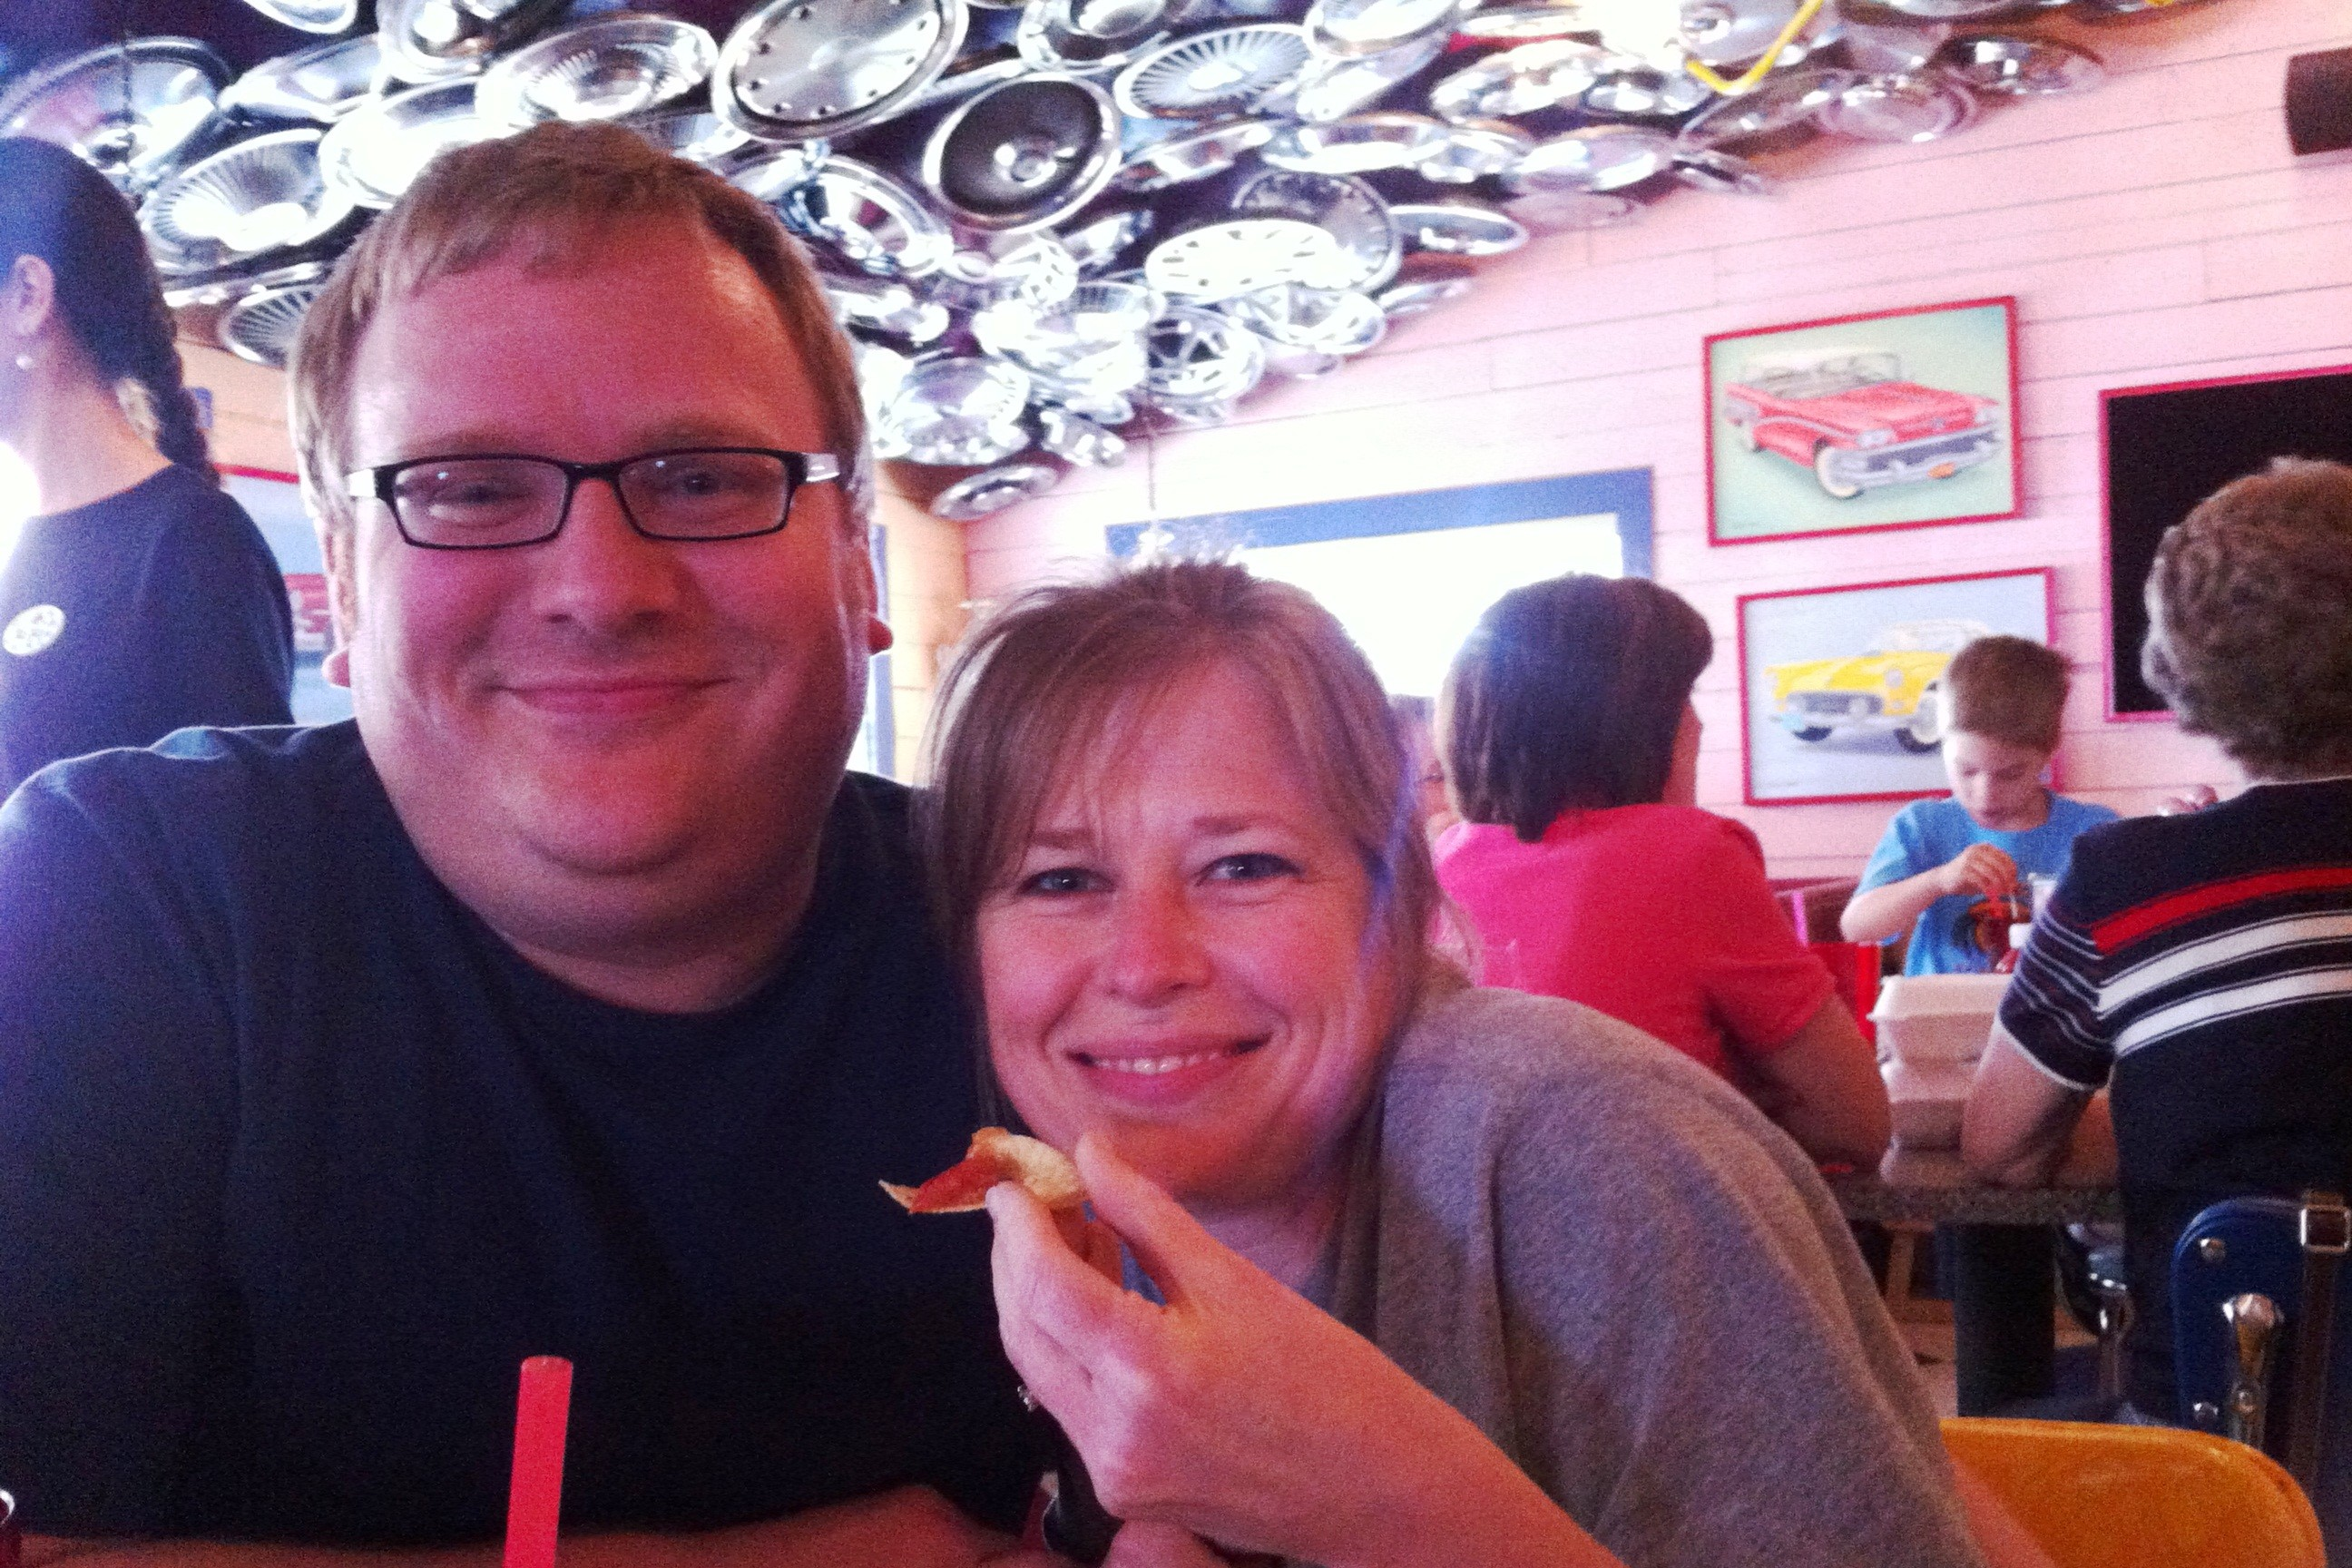 Jathan and Heather love Chuy's Mexican Restaurant